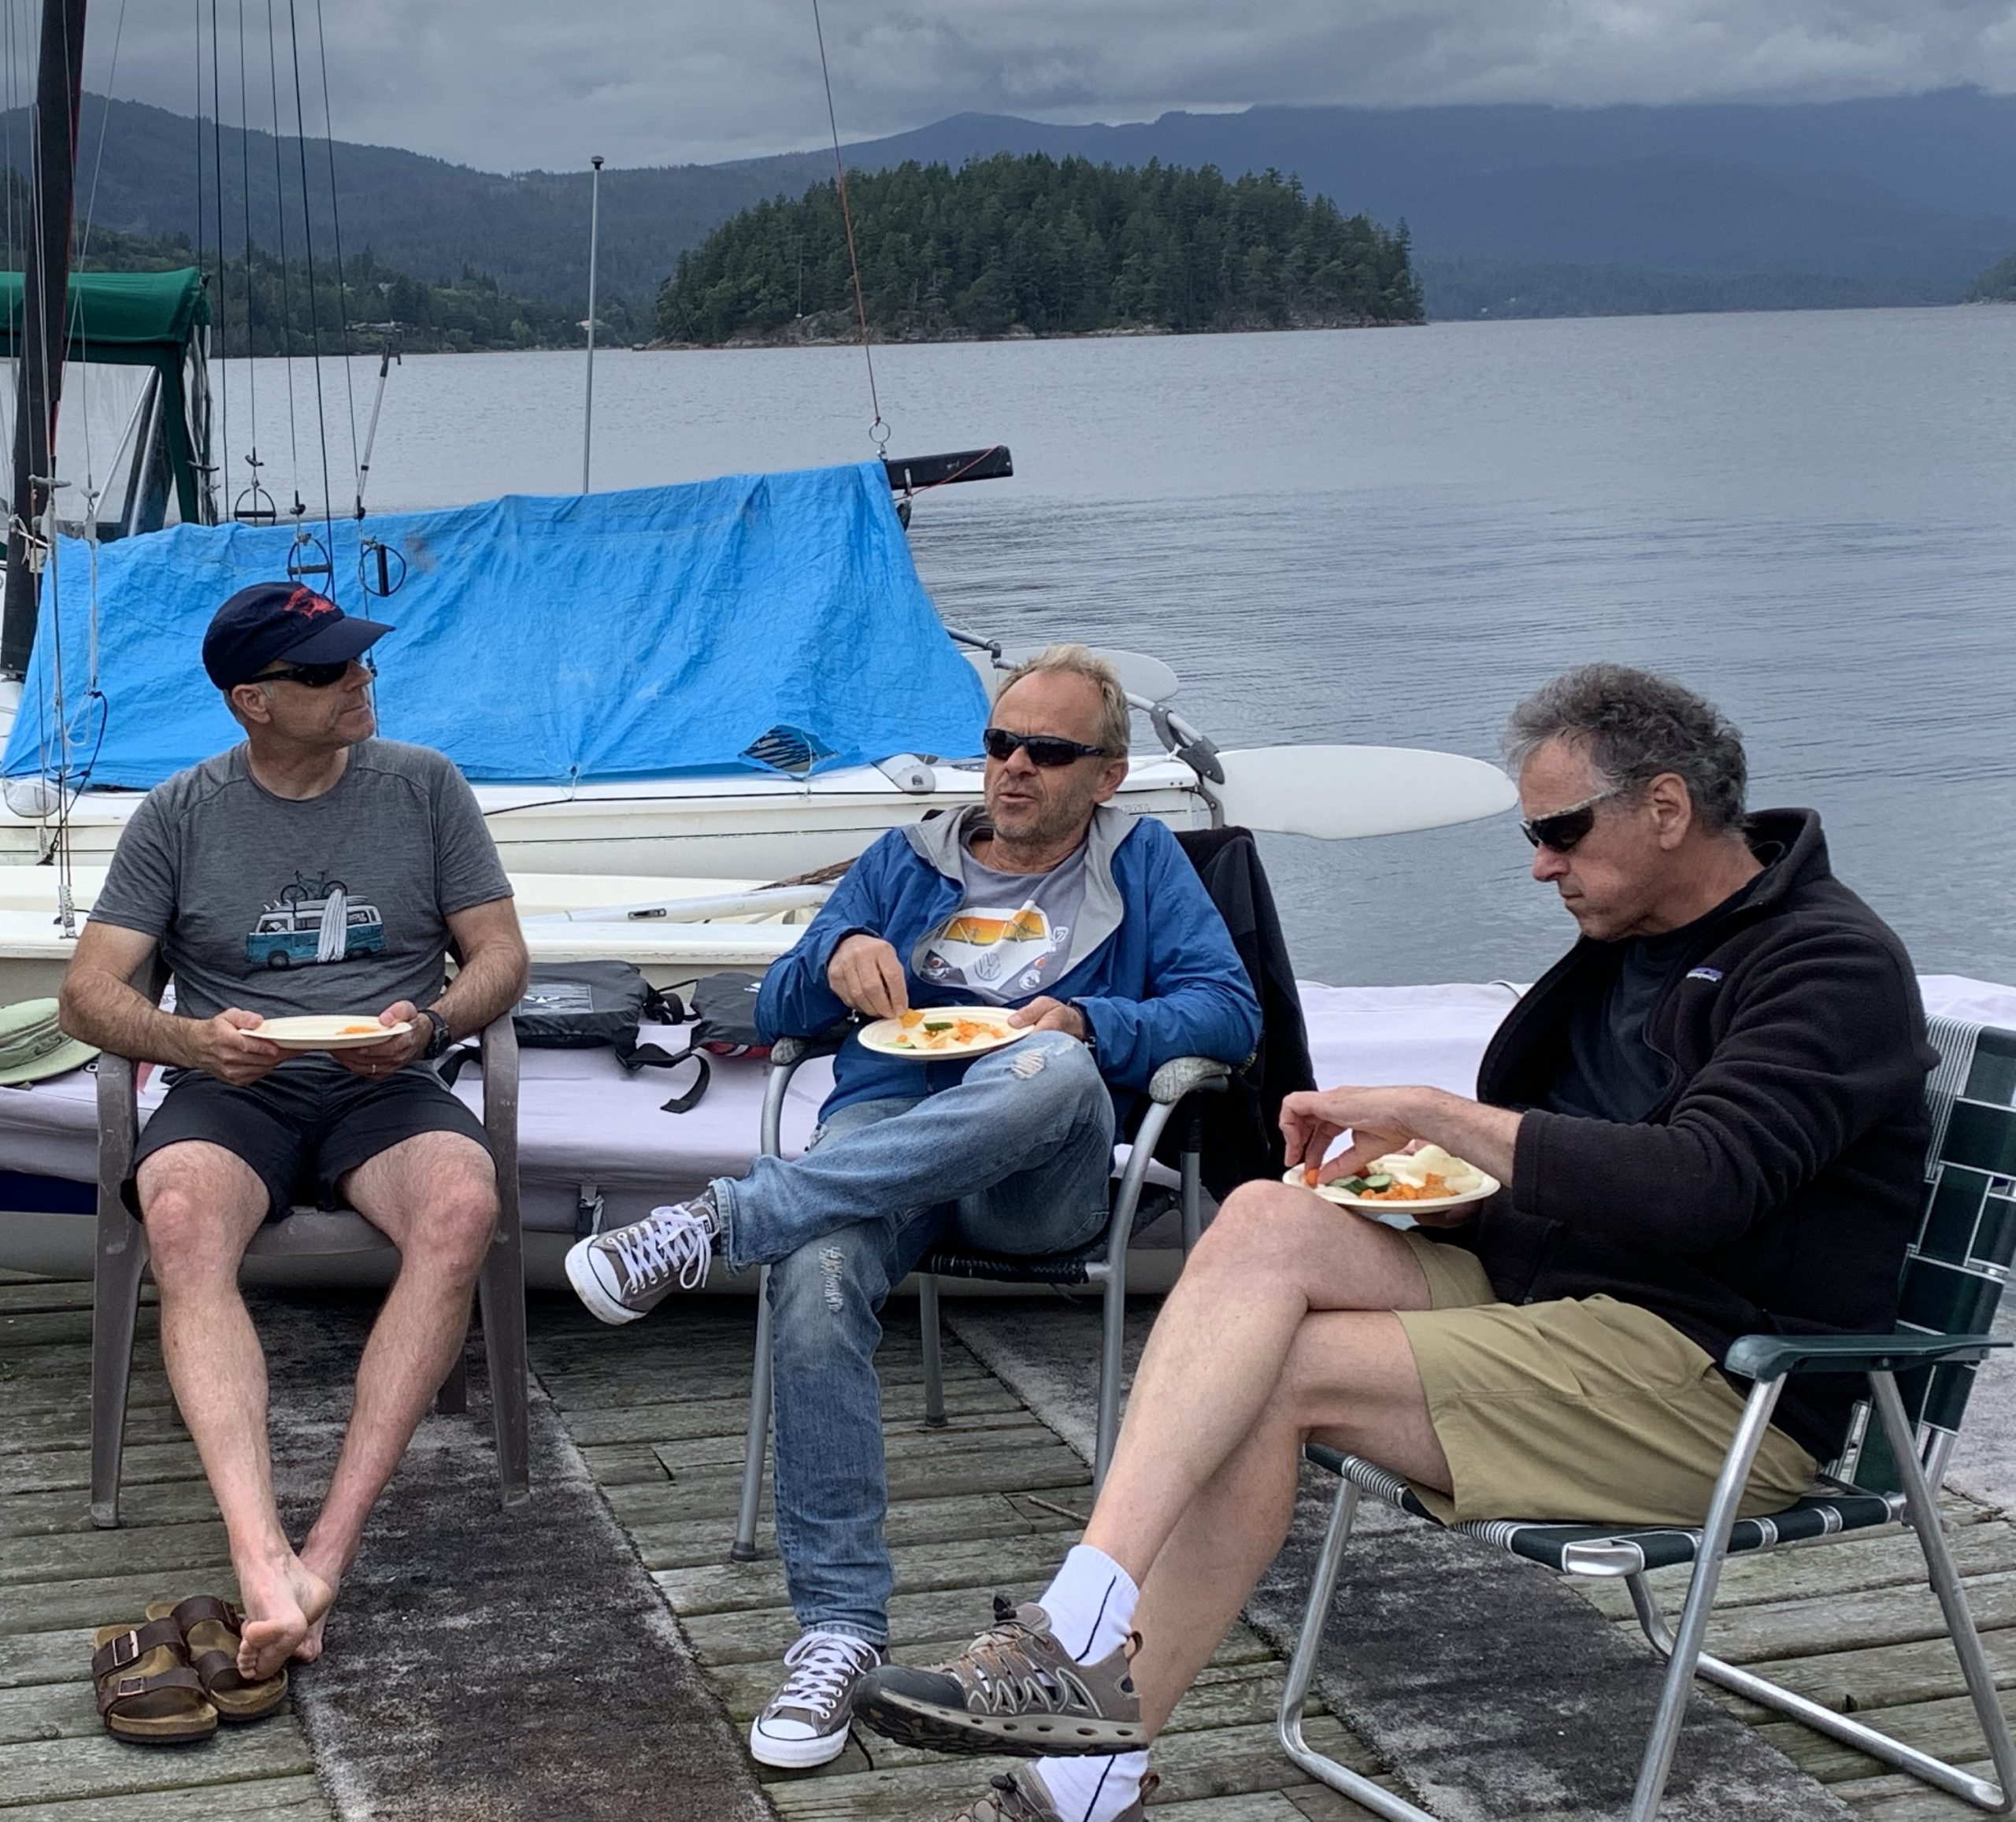 Brian, Grzegorz and Kim enjoy the BBQ and conversation after sailing.